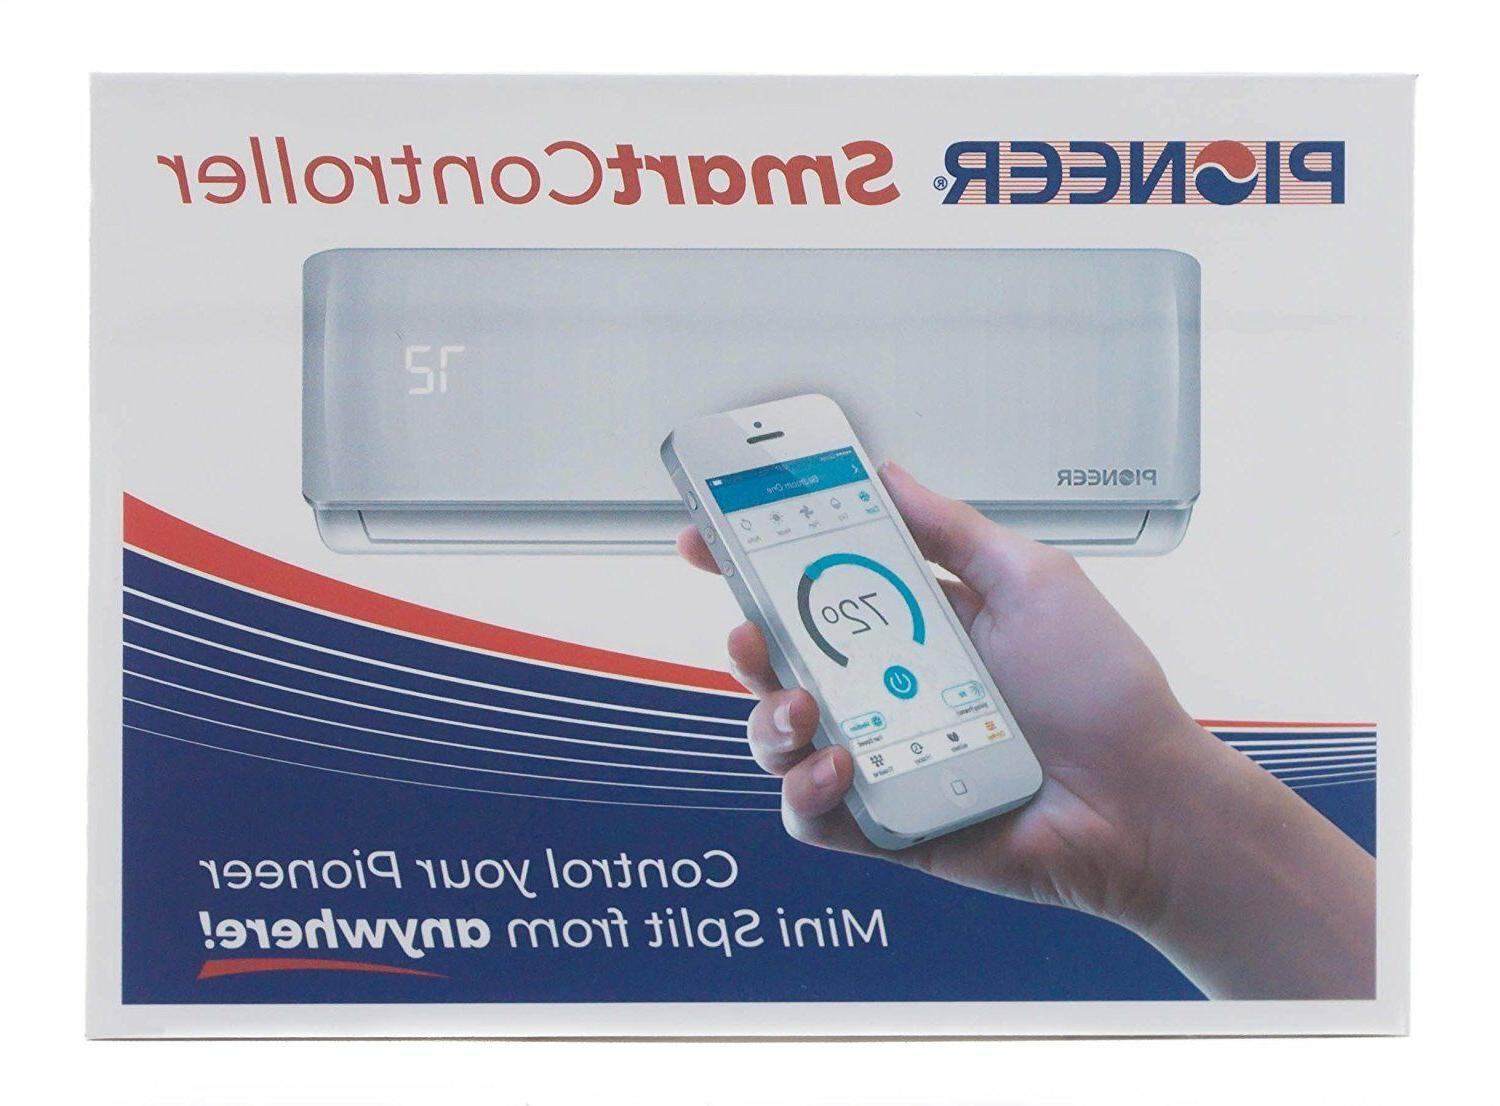 wireless internet access card for wys ductless